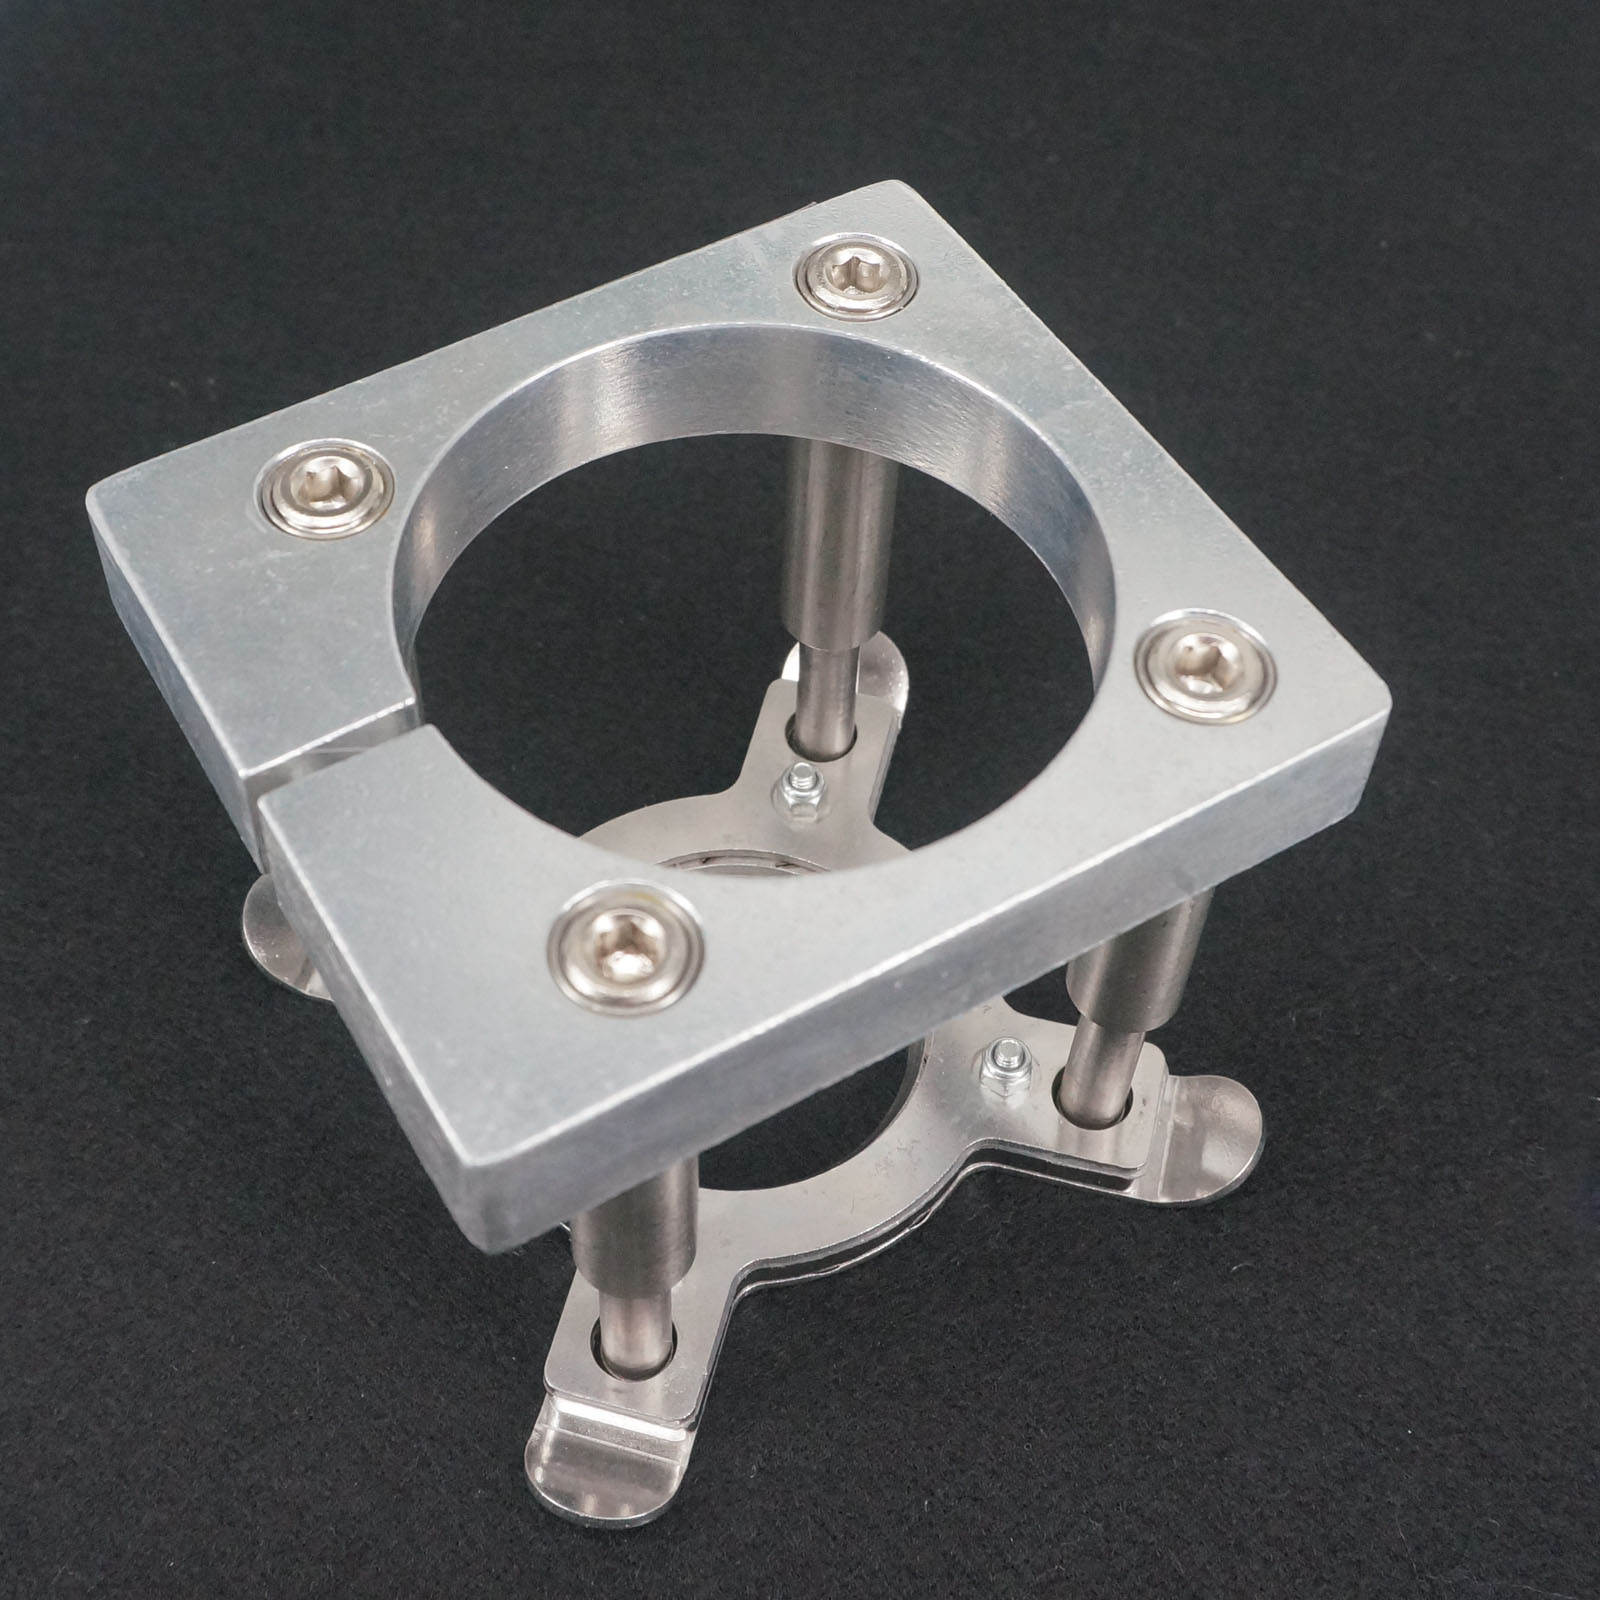 Diam 100mm Automatic Fixture Clamp Plate Device for 3KW CNC Spindle Motor купить